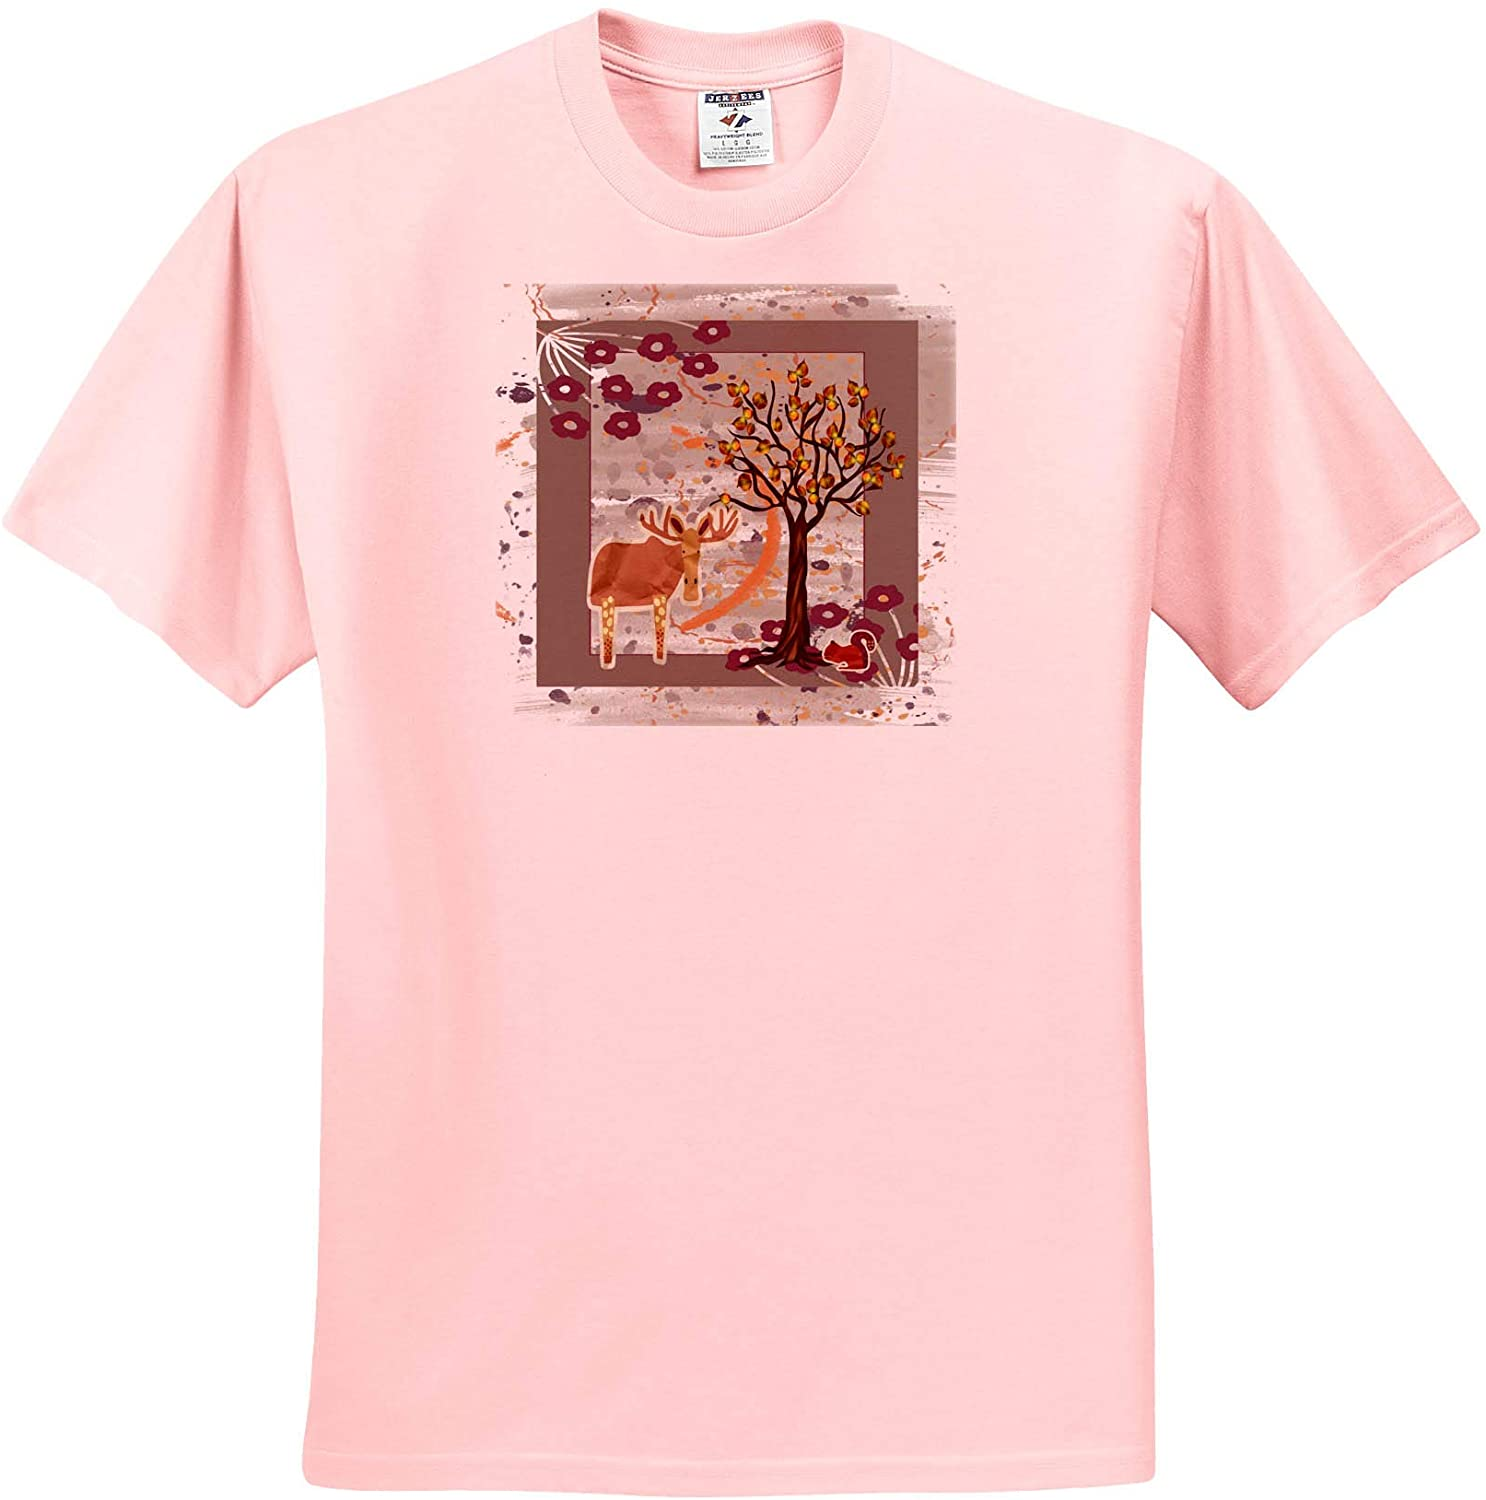 3dRose Beverly Turner Autumn Design - Autumn Moose, Squirrel Under Tree, and Flowers, Abstract - Youth Light-Pink-T-Shirt Small(6-8) (ts_328073_44)